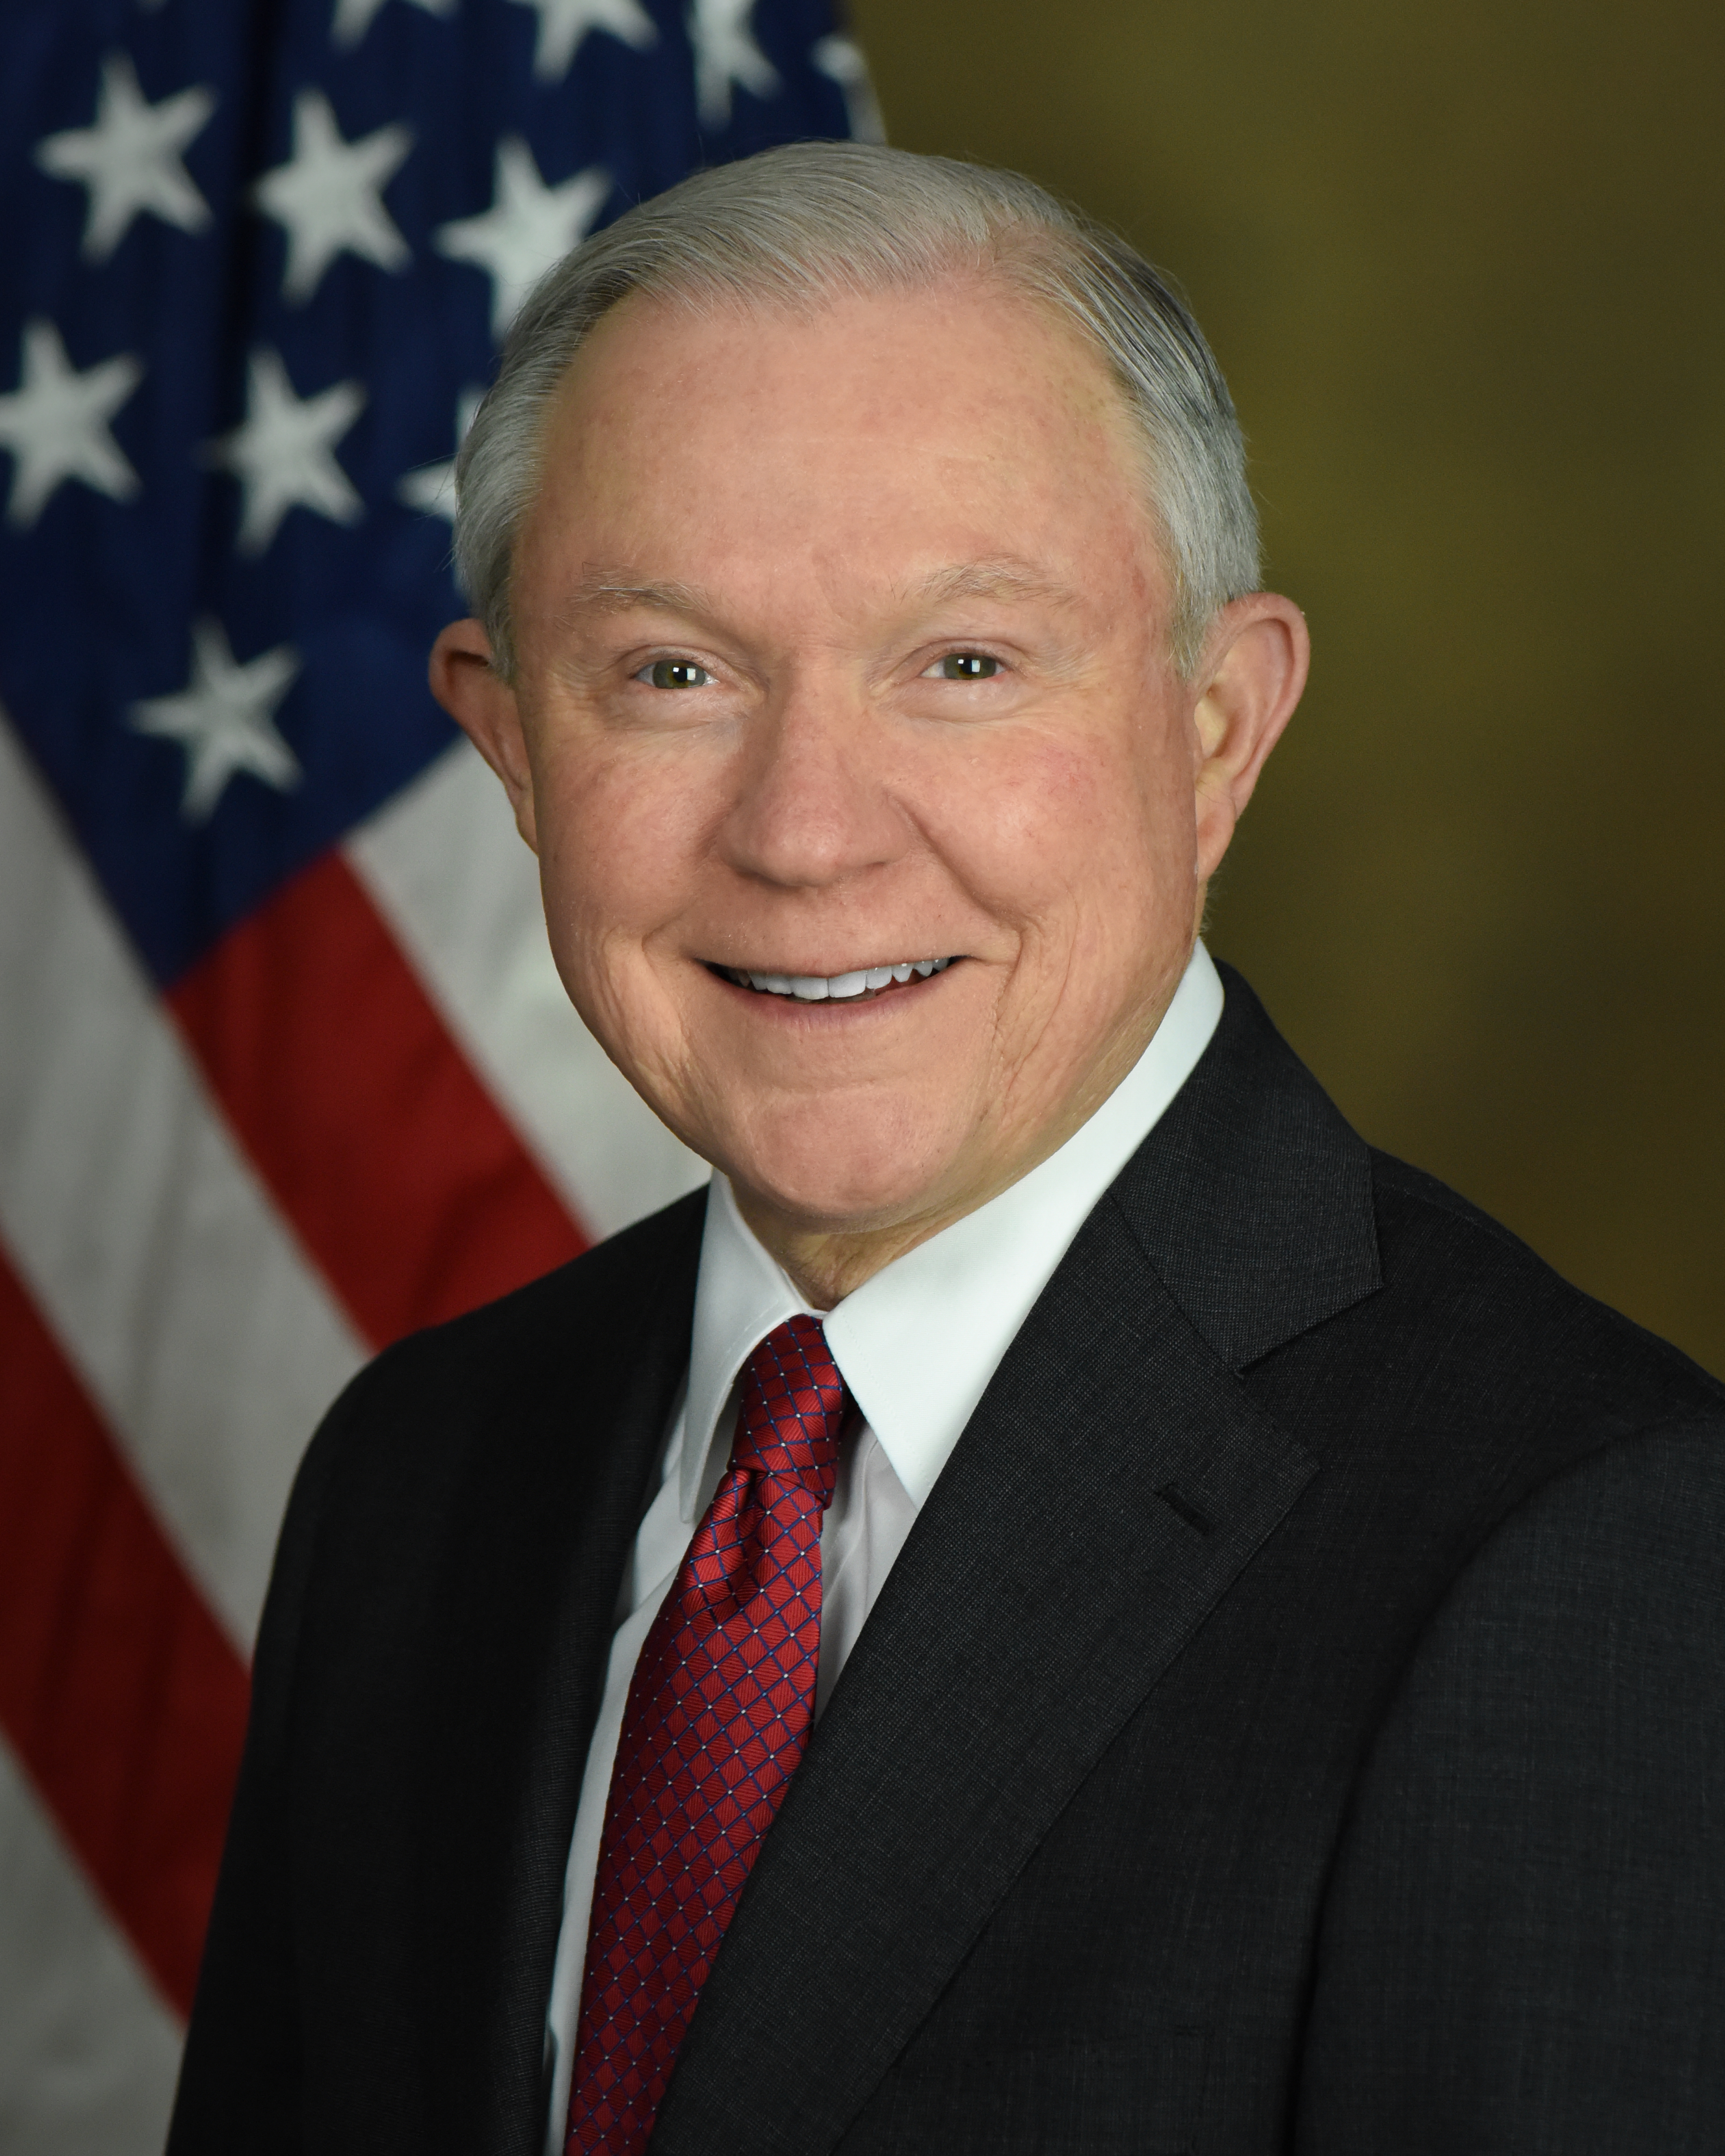 How to Contact Jeff Sessions